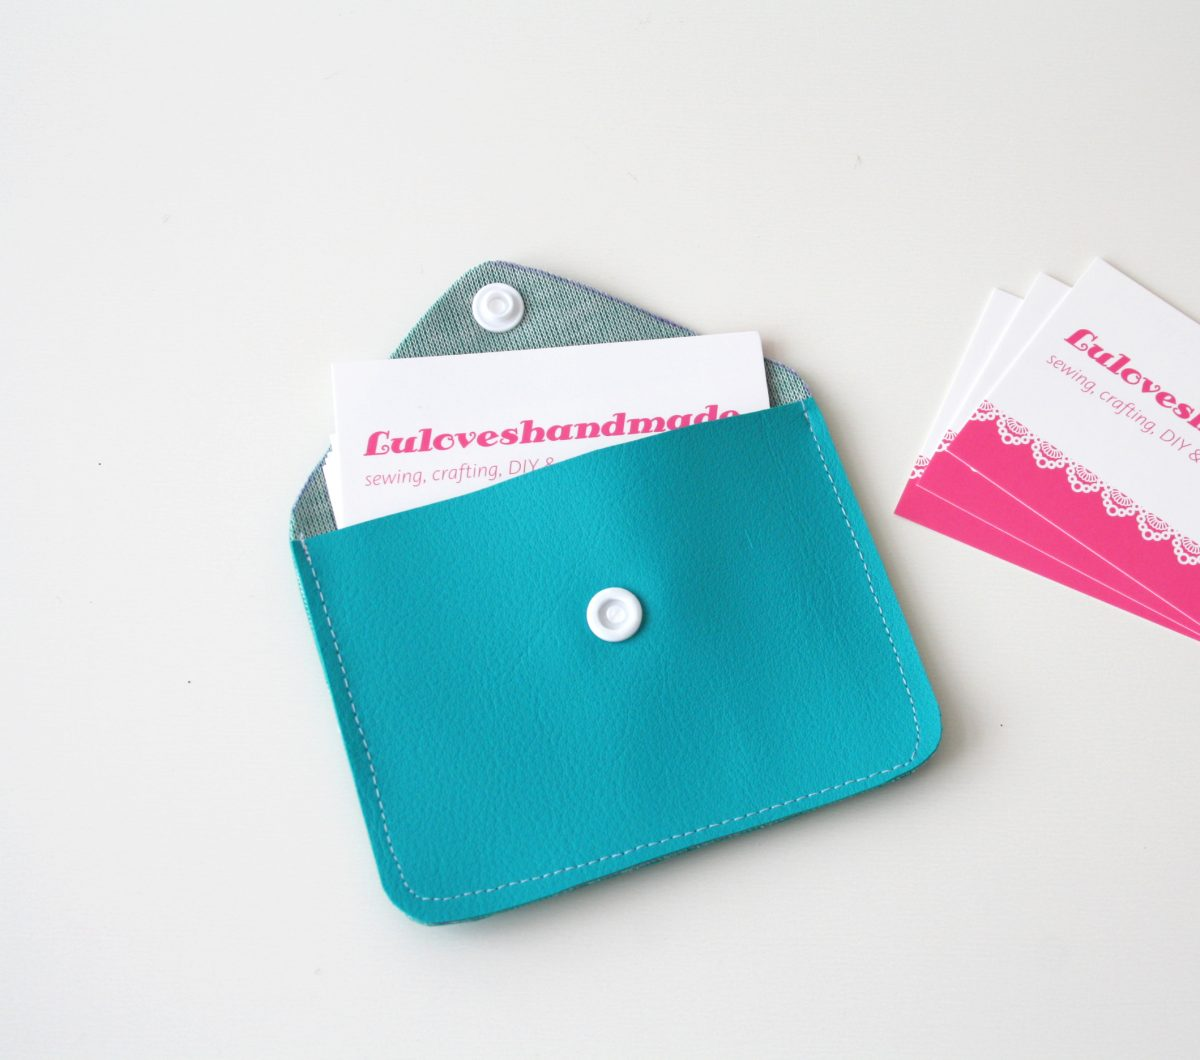 DIY with KAMSnaps: Faux Leather Business Card Holder - Luloveshandmade